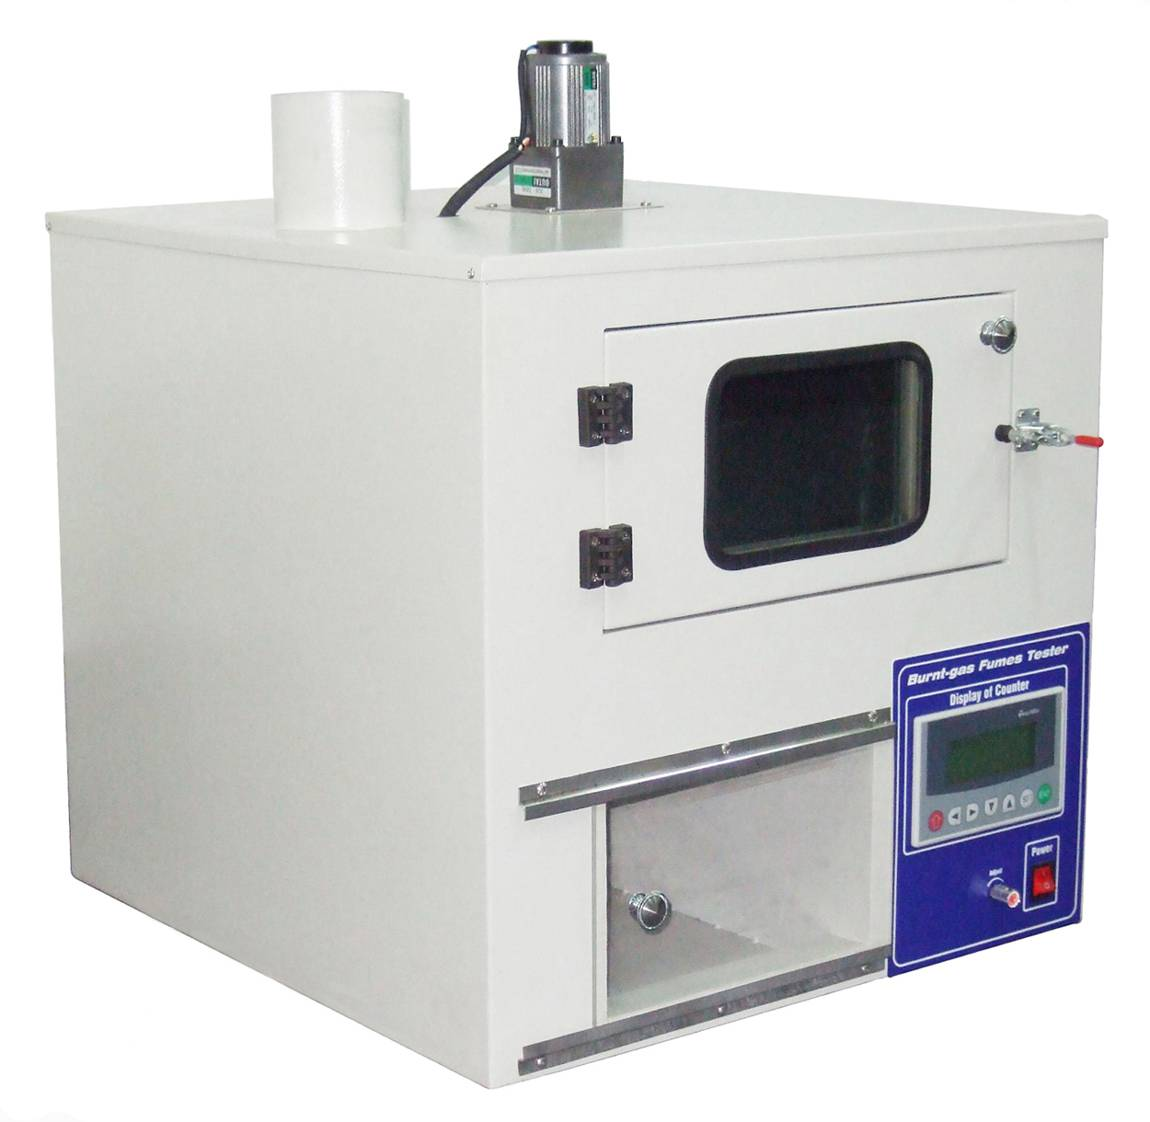 Gas Fume Chamber,Colorfastness Tester to Burnt Gas Fumes,AATCC 23,ISO105 G02